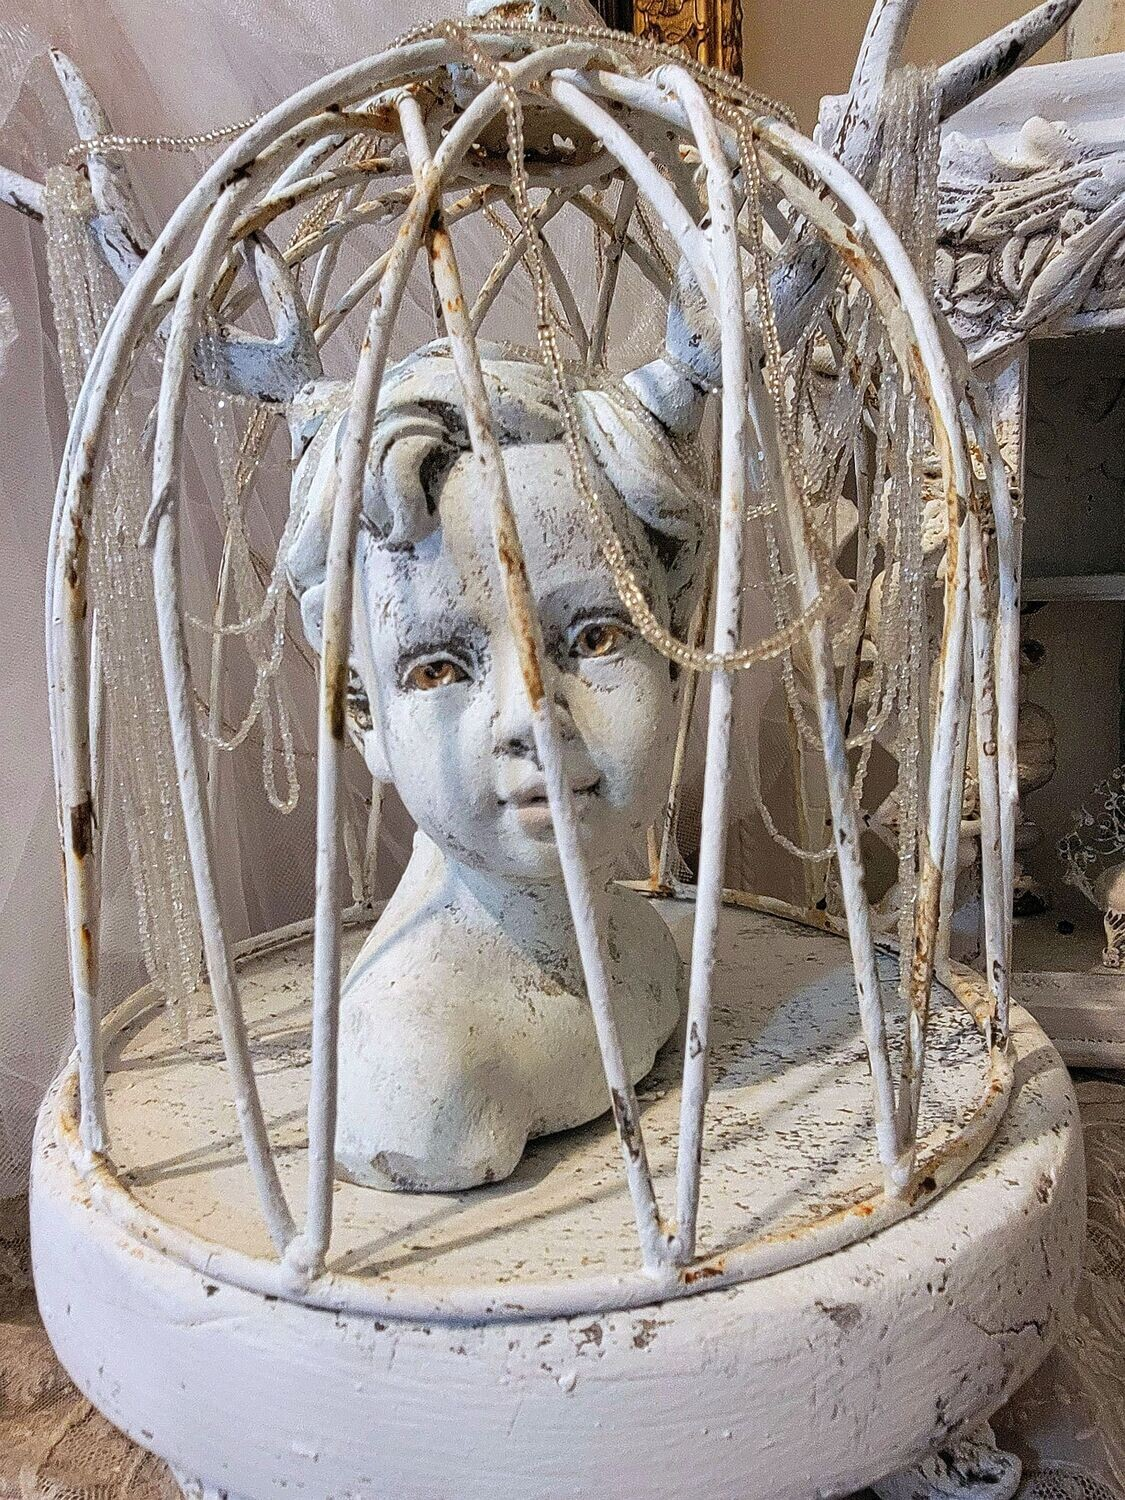 White sculpture table decor, young boy with antlers in dome with base, handmade one of a kind art